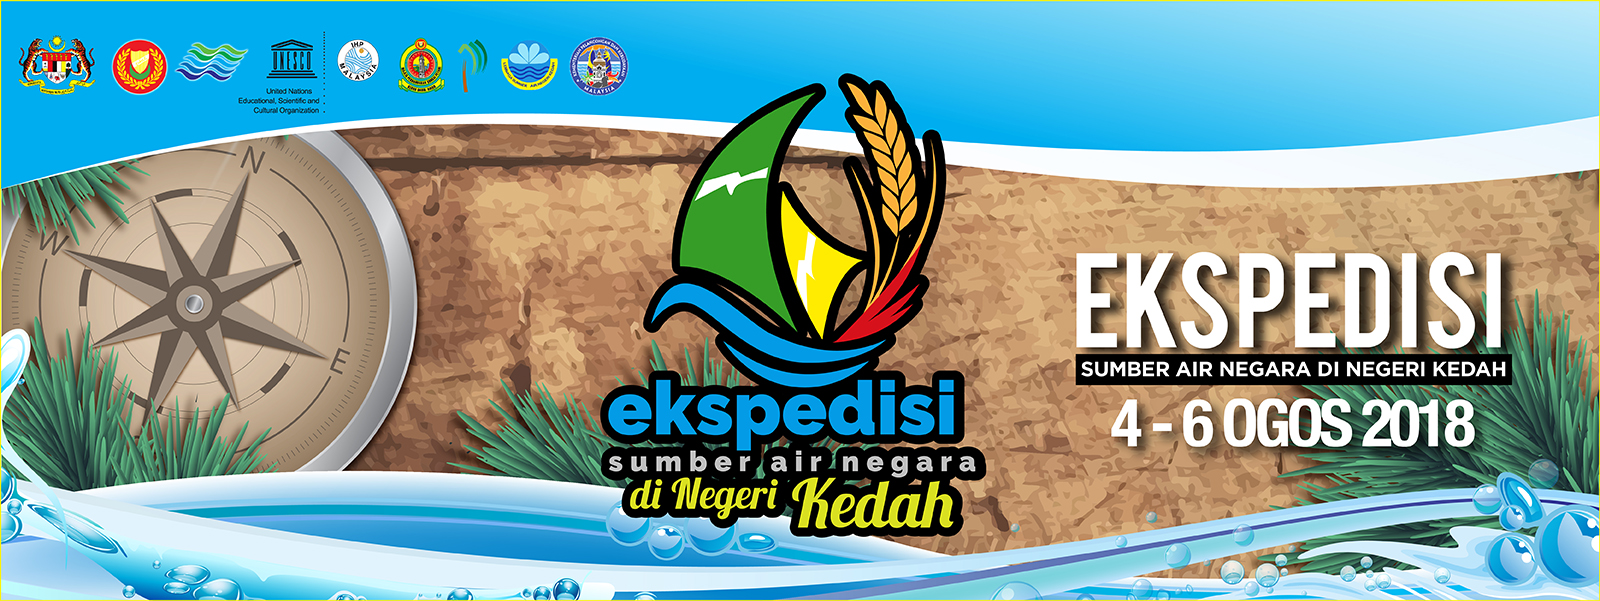 ekspedisi sungai 2018 new